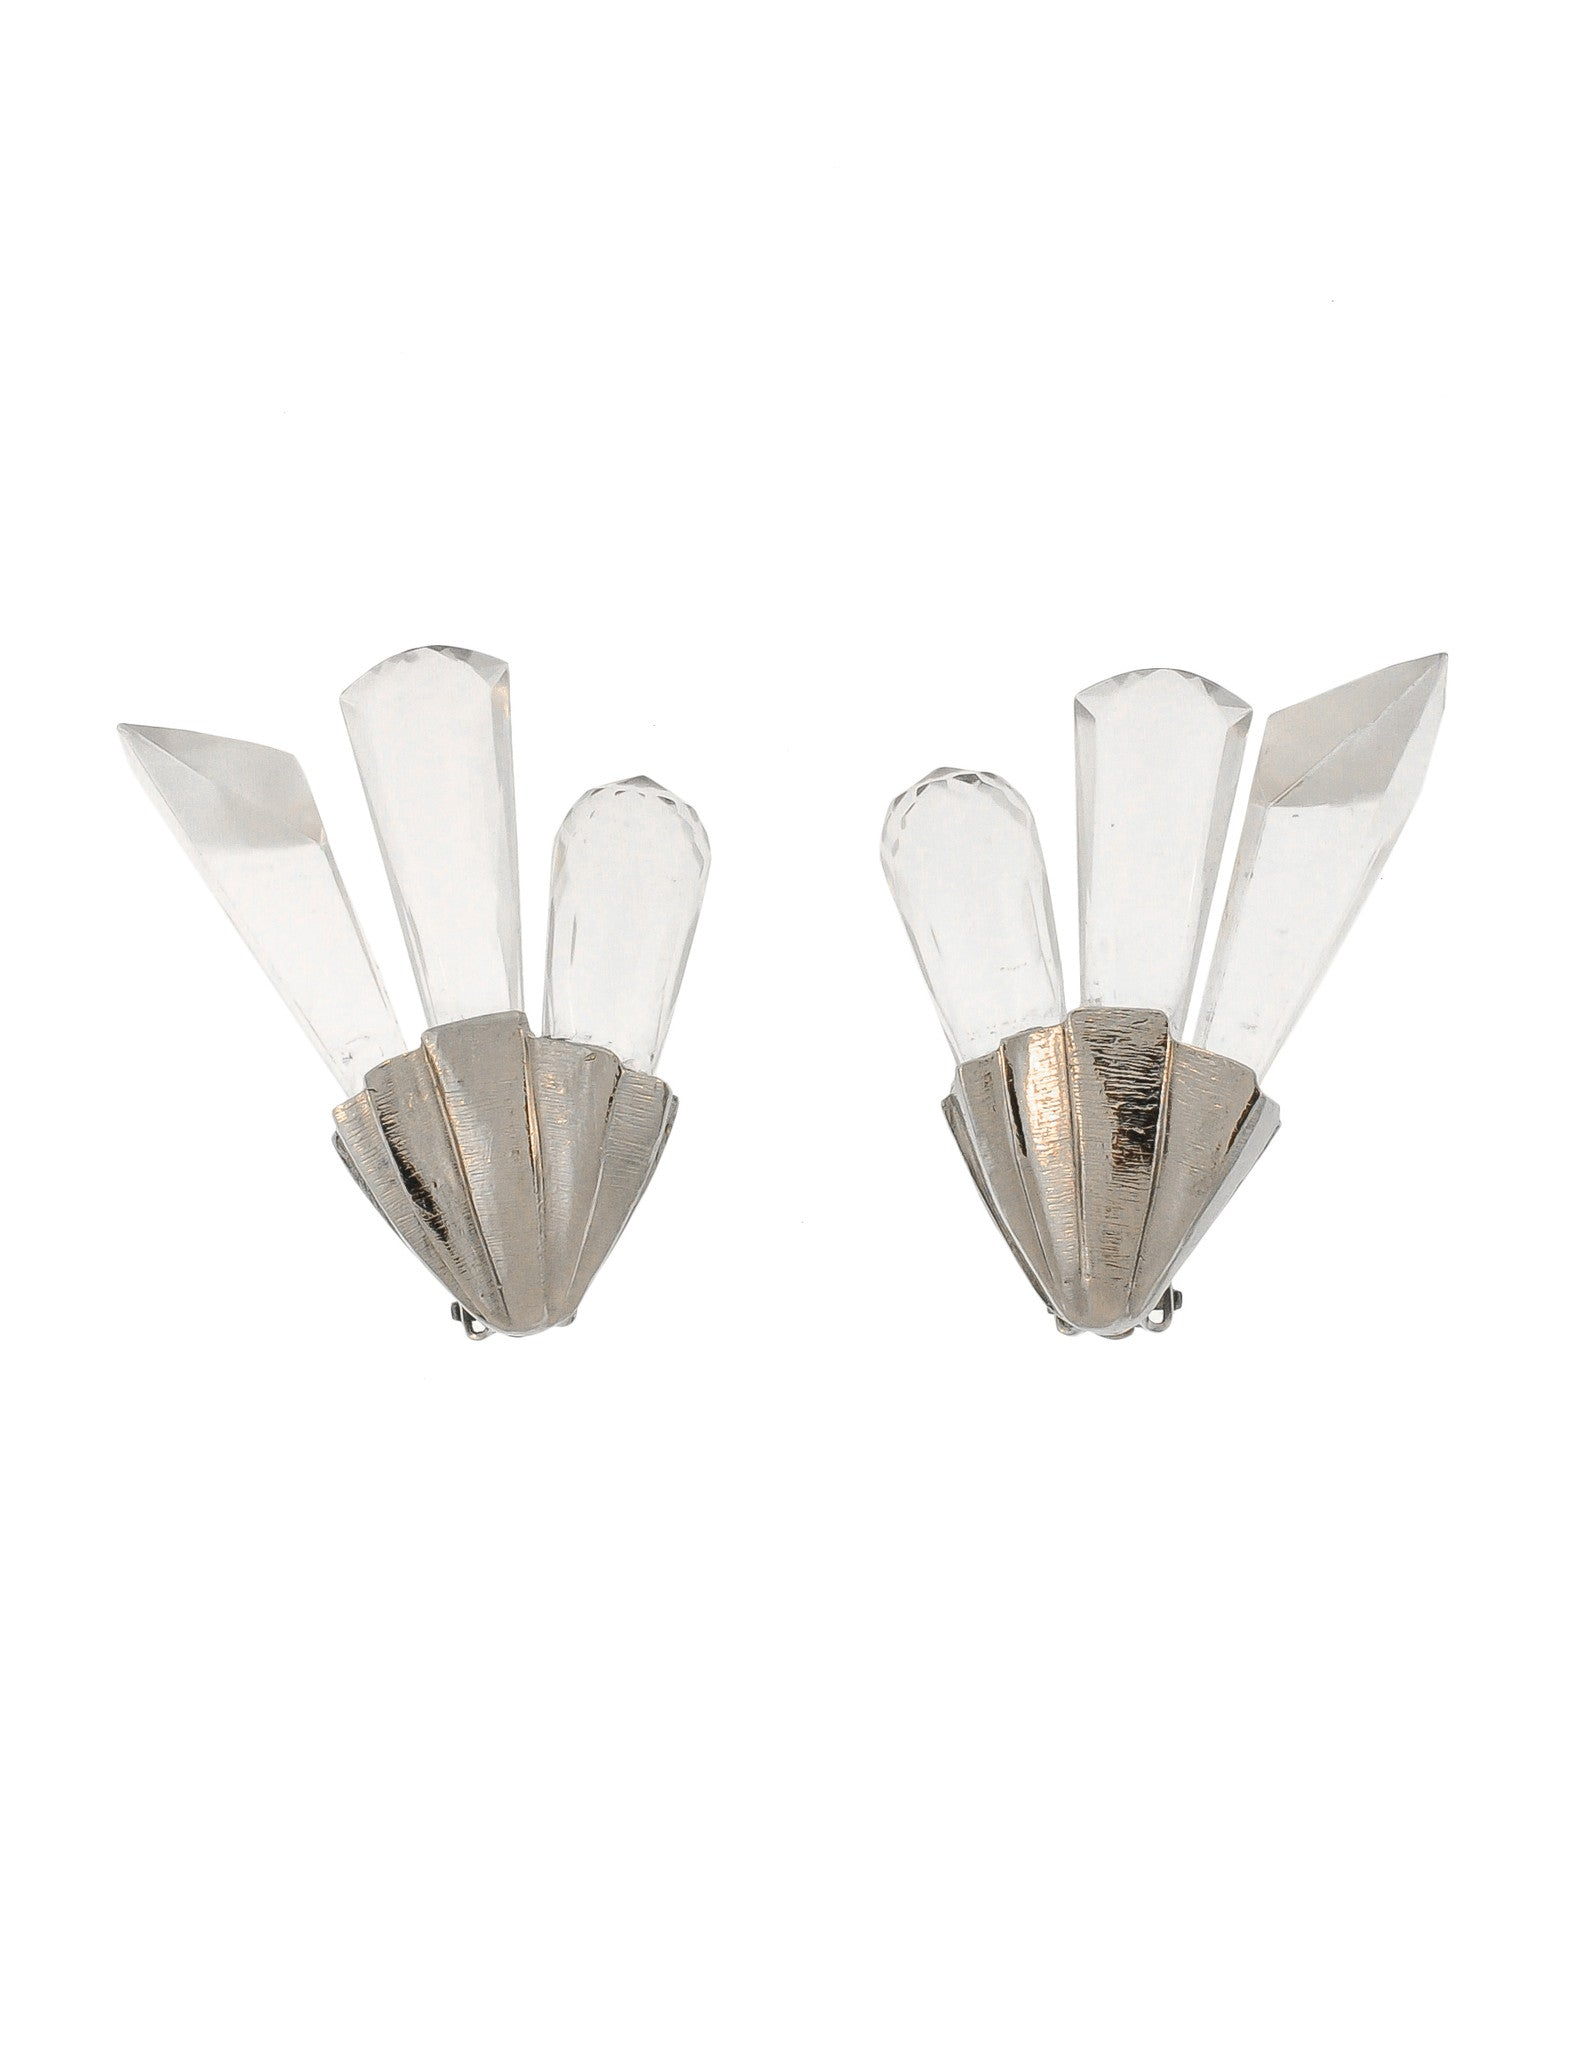 Christian Dior Vintage Silver Faceted Clear Crystal Spike Earrings - Amarcord Vintage Fashion  - 1